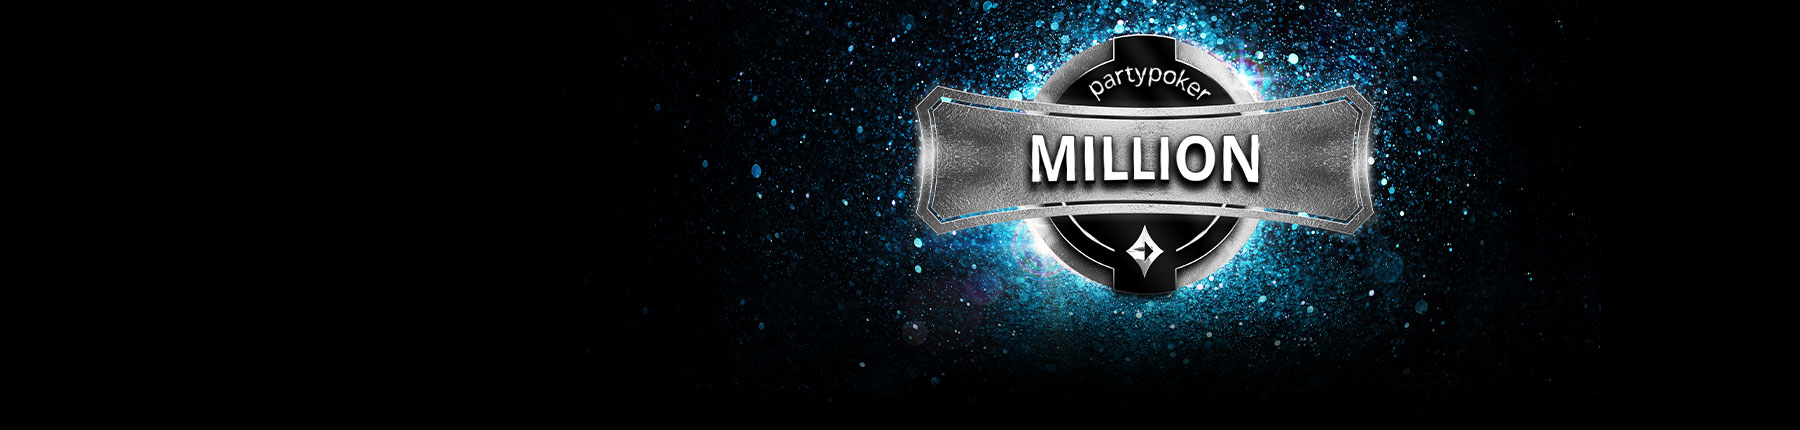 partypoker-million-phoenix-hp-slider